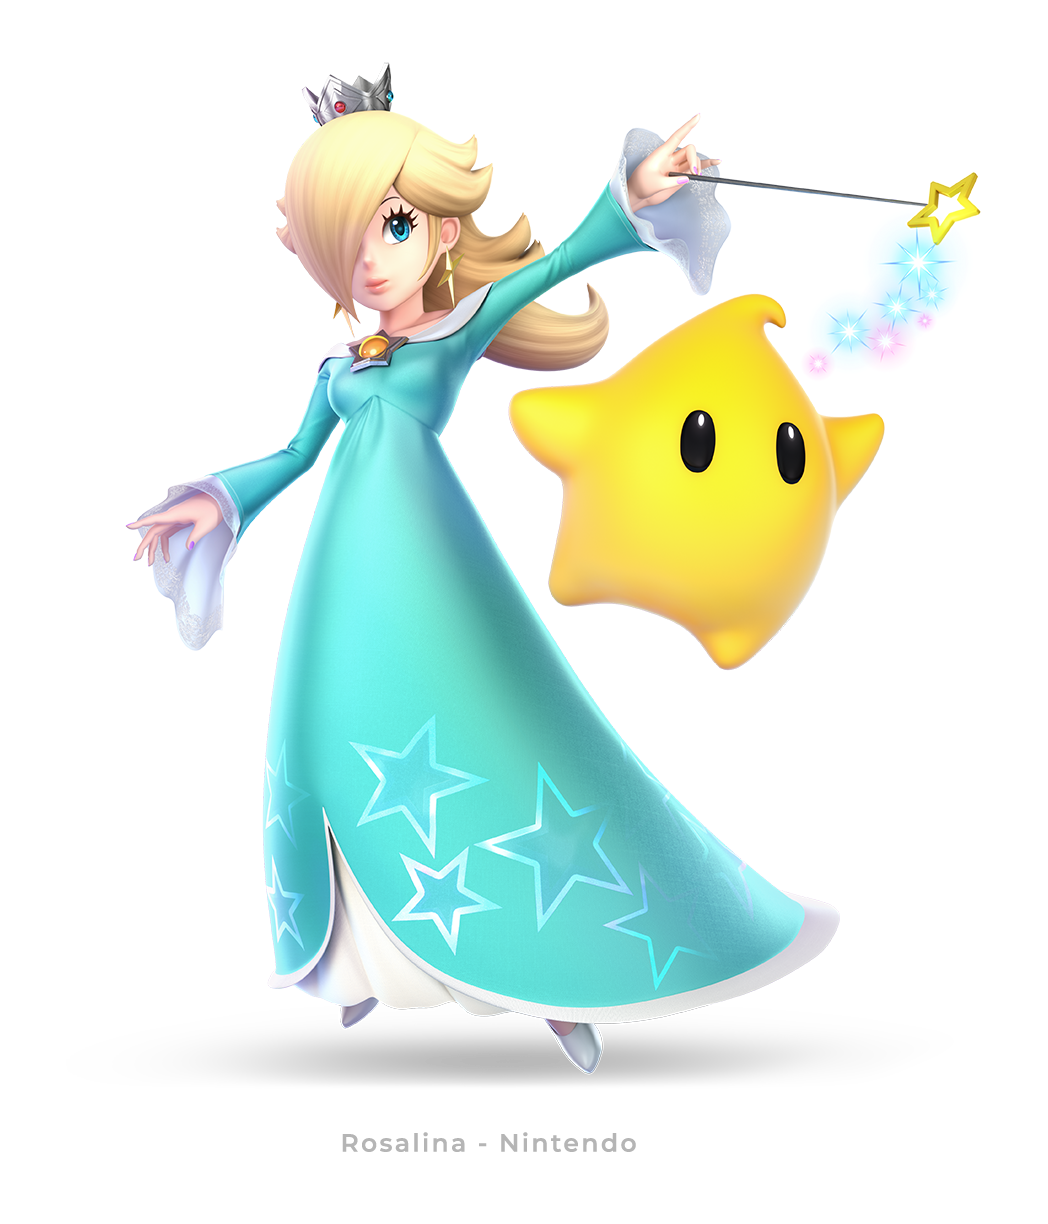 Kerri Kane voiceovers Rosalina for Nintendo